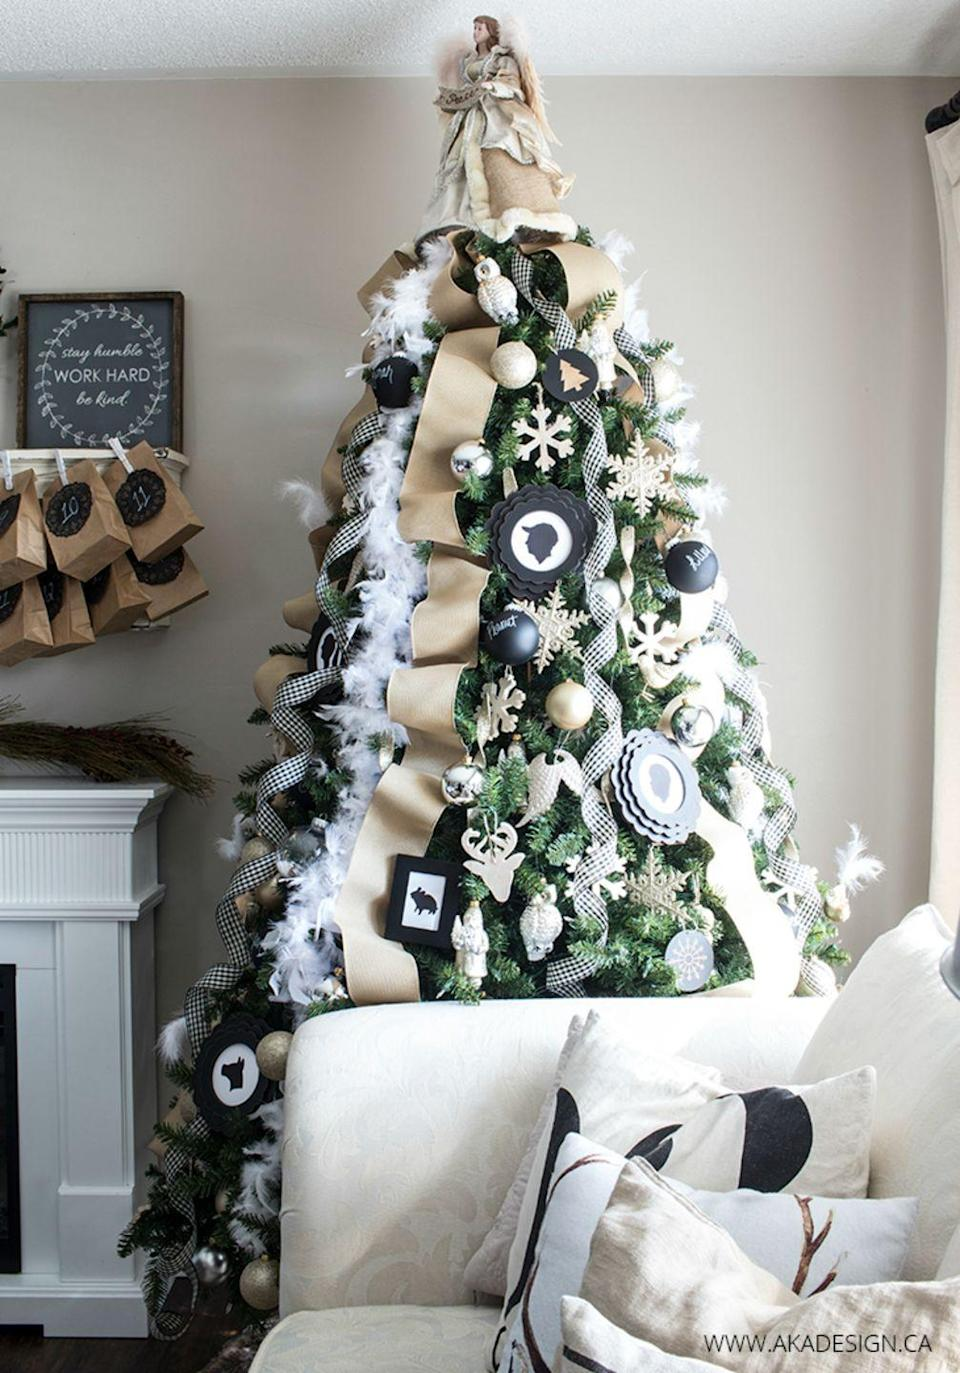 """<p>Start off with a pre-lit faux tree and add in cozy neutral features like gingham ribbons and black ornaments for this sparkly black-and-white display.</p><p><em><strong>Get the tutorial at </strong><strong><a href=""""http://akadesign.ca/glittery-neutral-christmas-tree/"""" rel=""""nofollow noopener"""" target=""""_blank"""" data-ylk=""""slk:Home Made Lovely"""" class=""""link rapid-noclick-resp"""">Home Made Lovely</a>.</strong></em></p><p><a class=""""link rapid-noclick-resp"""" href=""""https://www.amazon.com/Cynthias-Feathers-Chandelle-Feather-Tinsels/dp/B00KBVX2YO/?tag=syn-yahoo-20&ascsubtag=%5Bartid%7C10070.g.2025%5Bsrc%7Cyahoo-us"""" rel=""""nofollow noopener"""" target=""""_blank"""" data-ylk=""""slk:BUY WHITE FEATHER BOA"""">BUY WHITE FEATHER BOA</a></p>"""